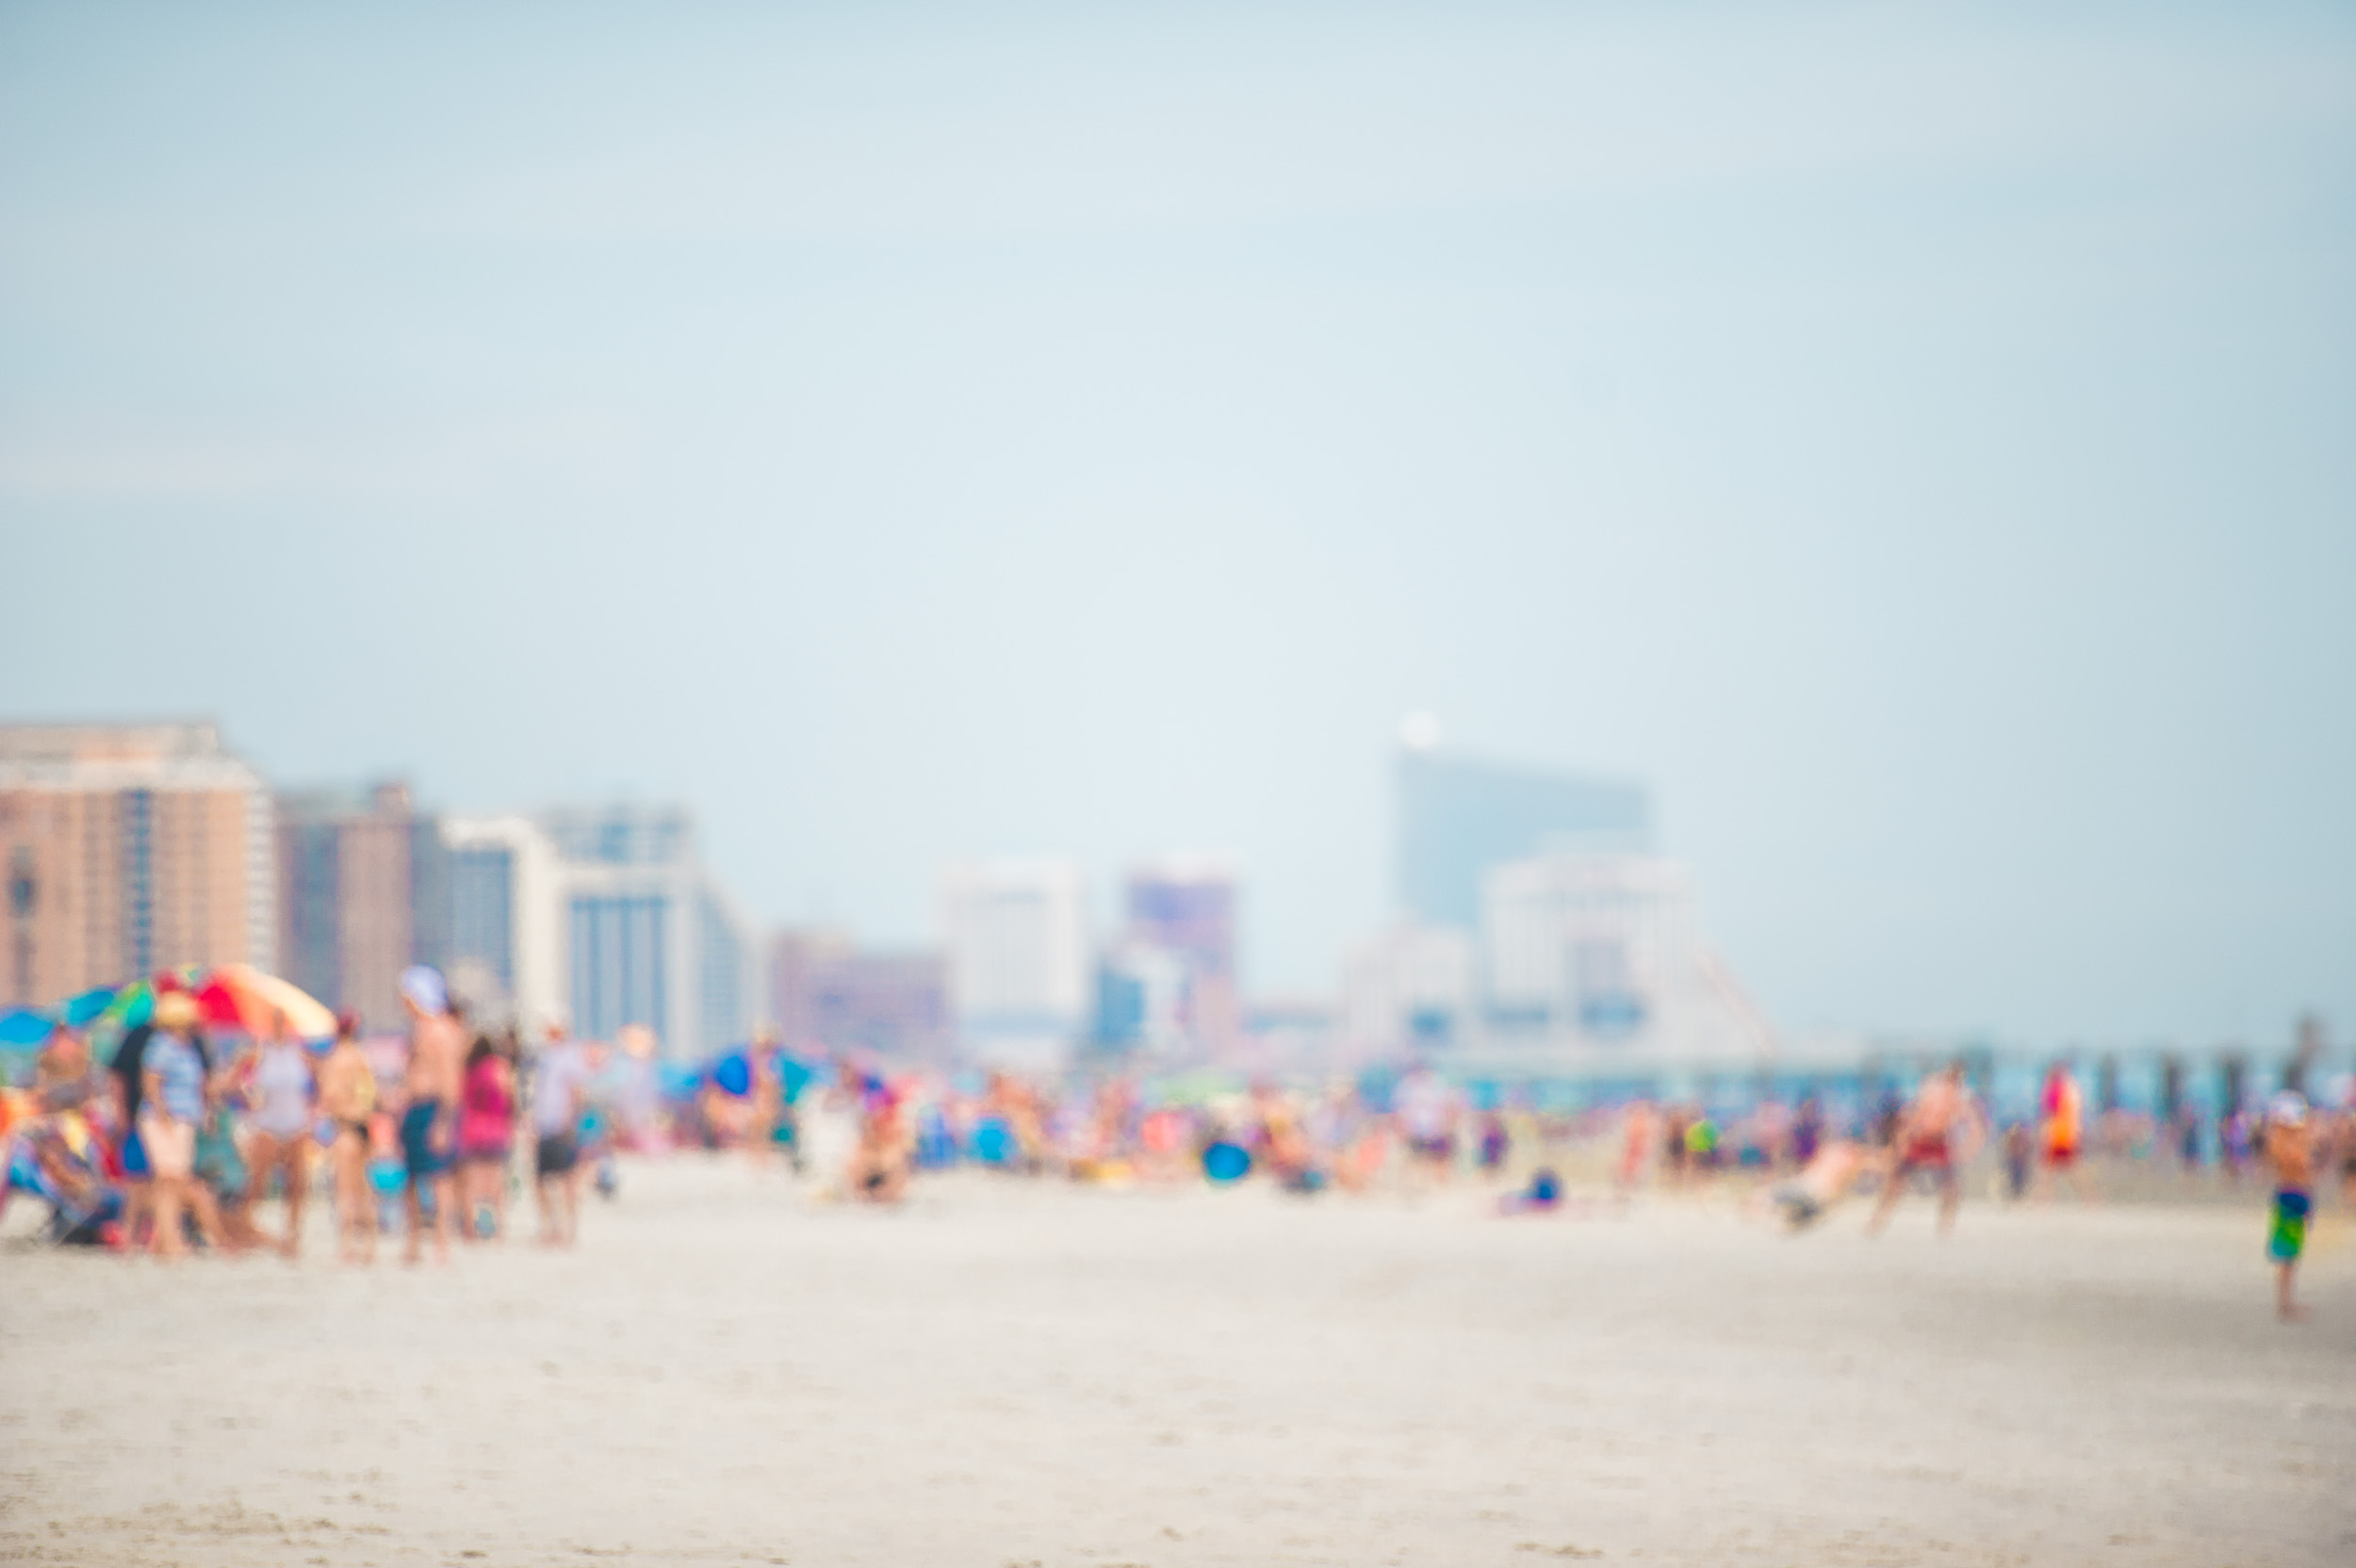 pam_korman_photography-sign_of_water-people_on_the_beach-atlantic_ocean-01.jpg